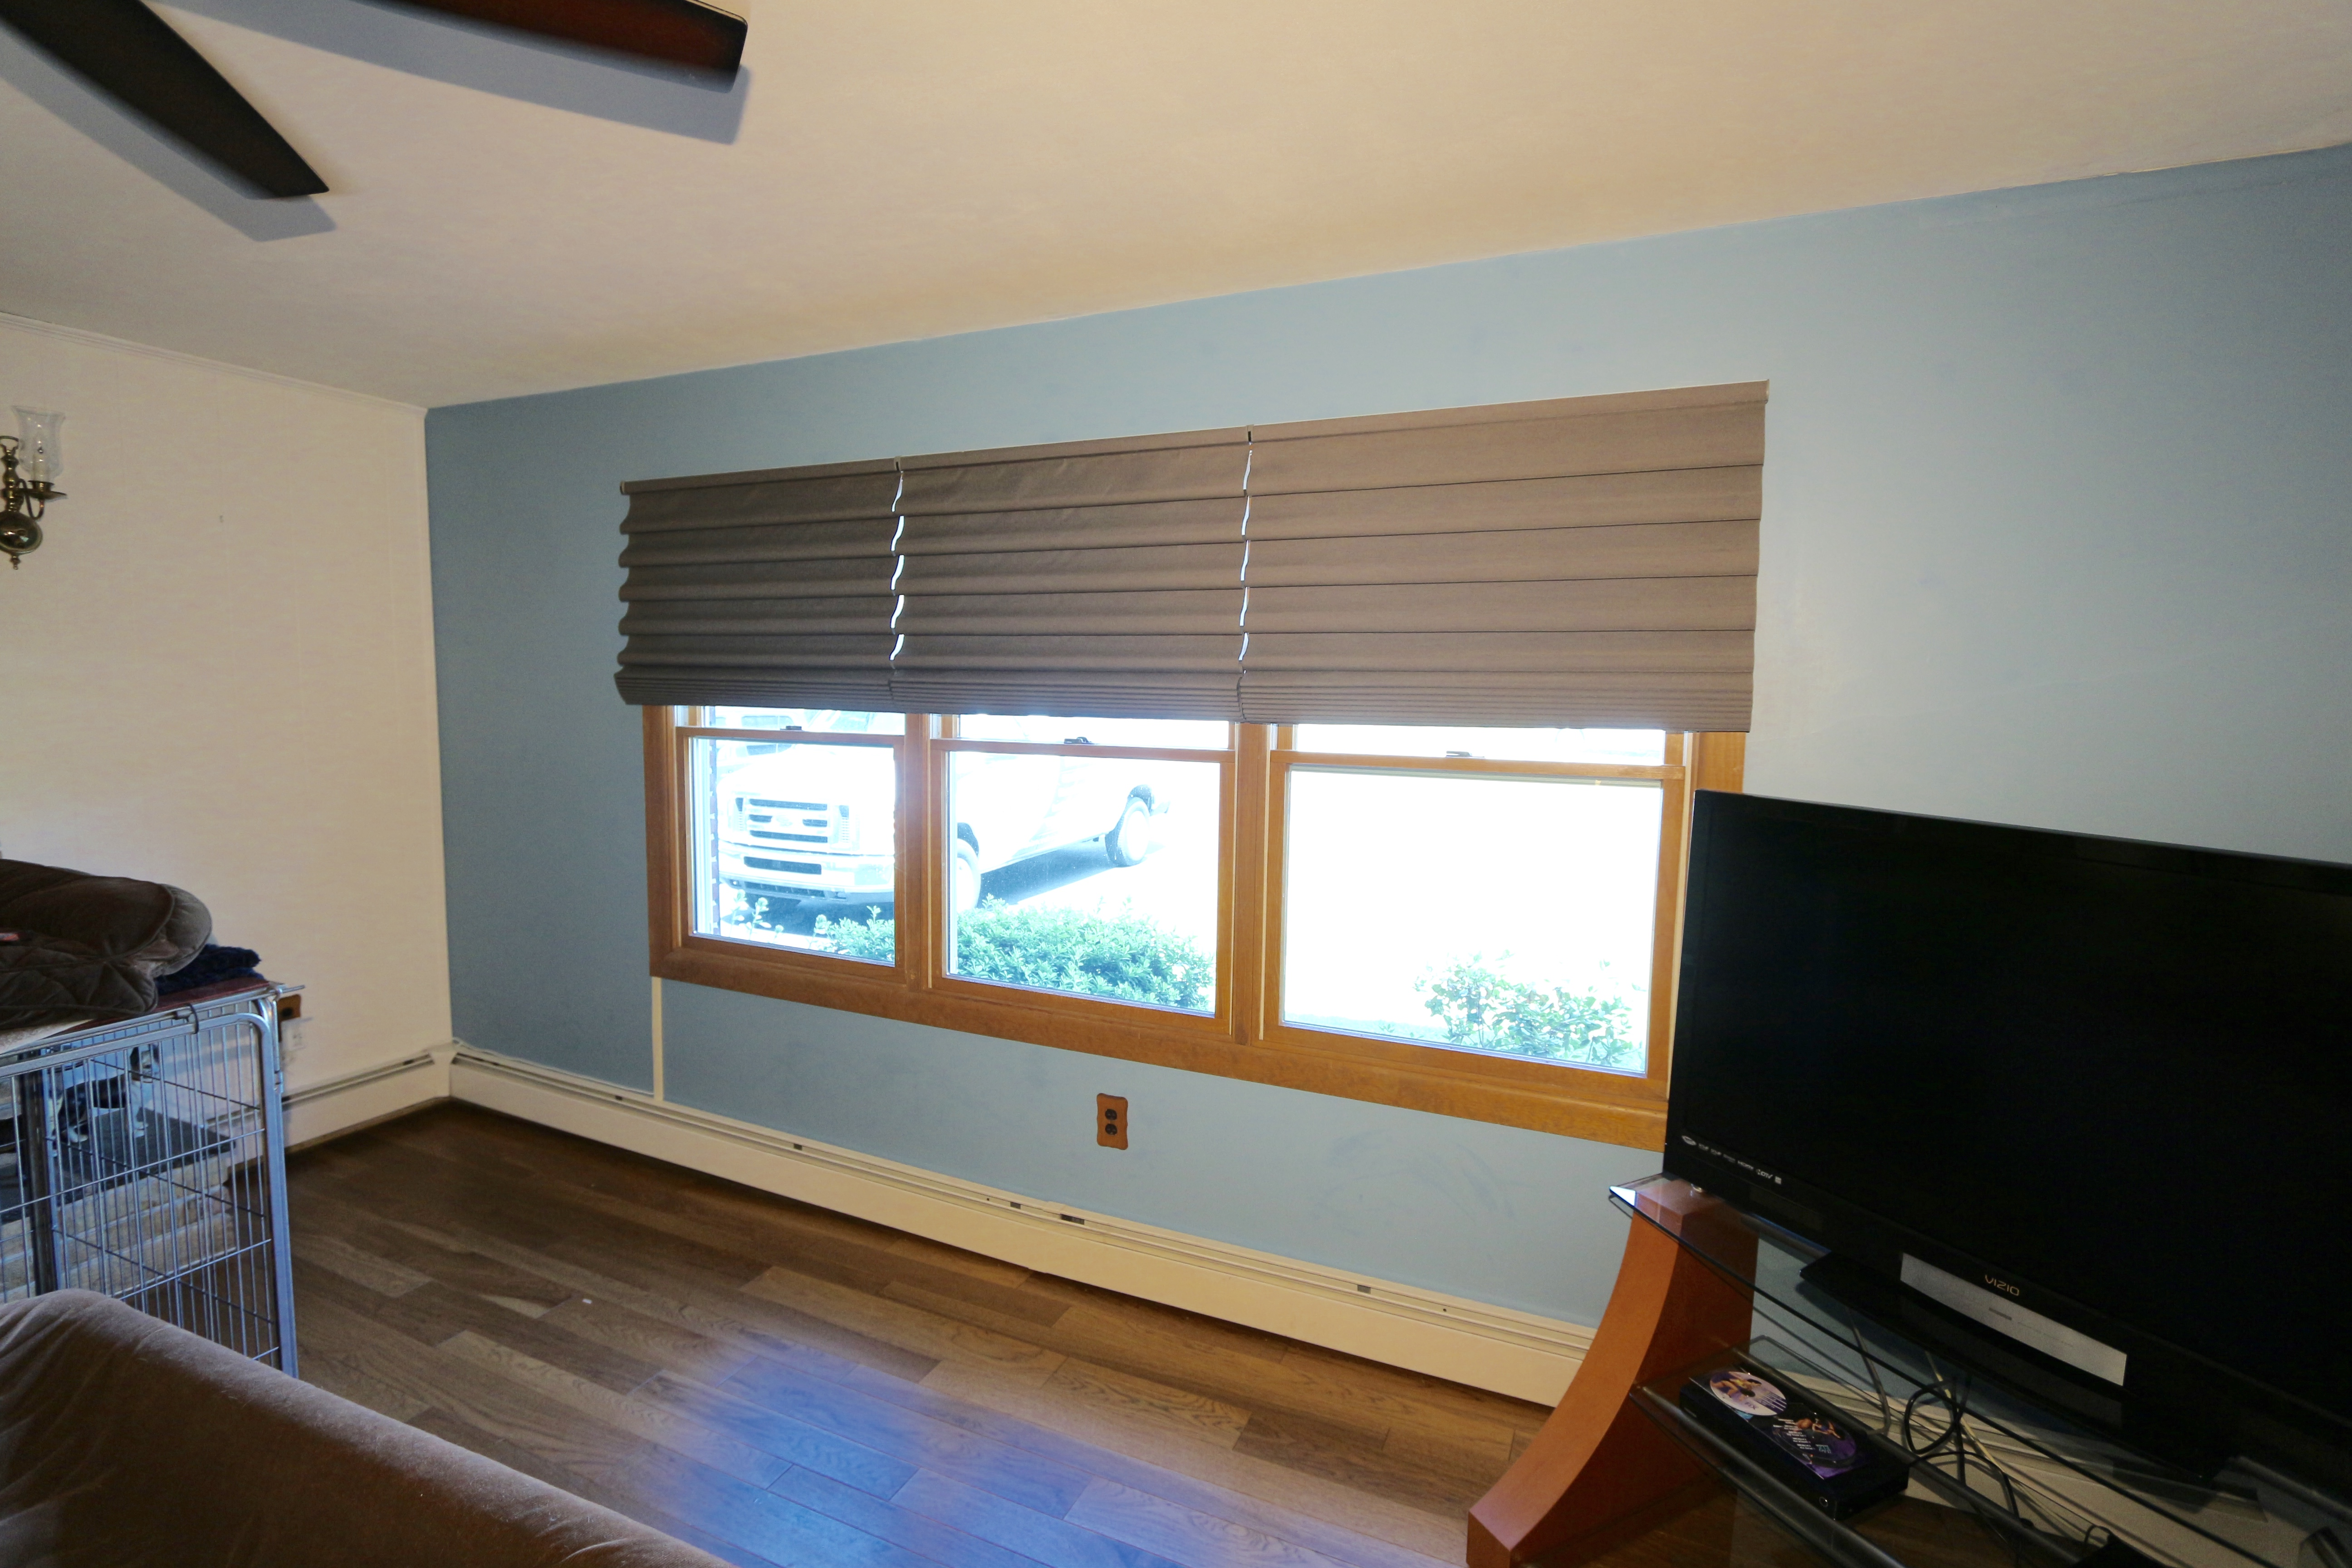 Vignette Shades; Plug in Motorization and Cordless